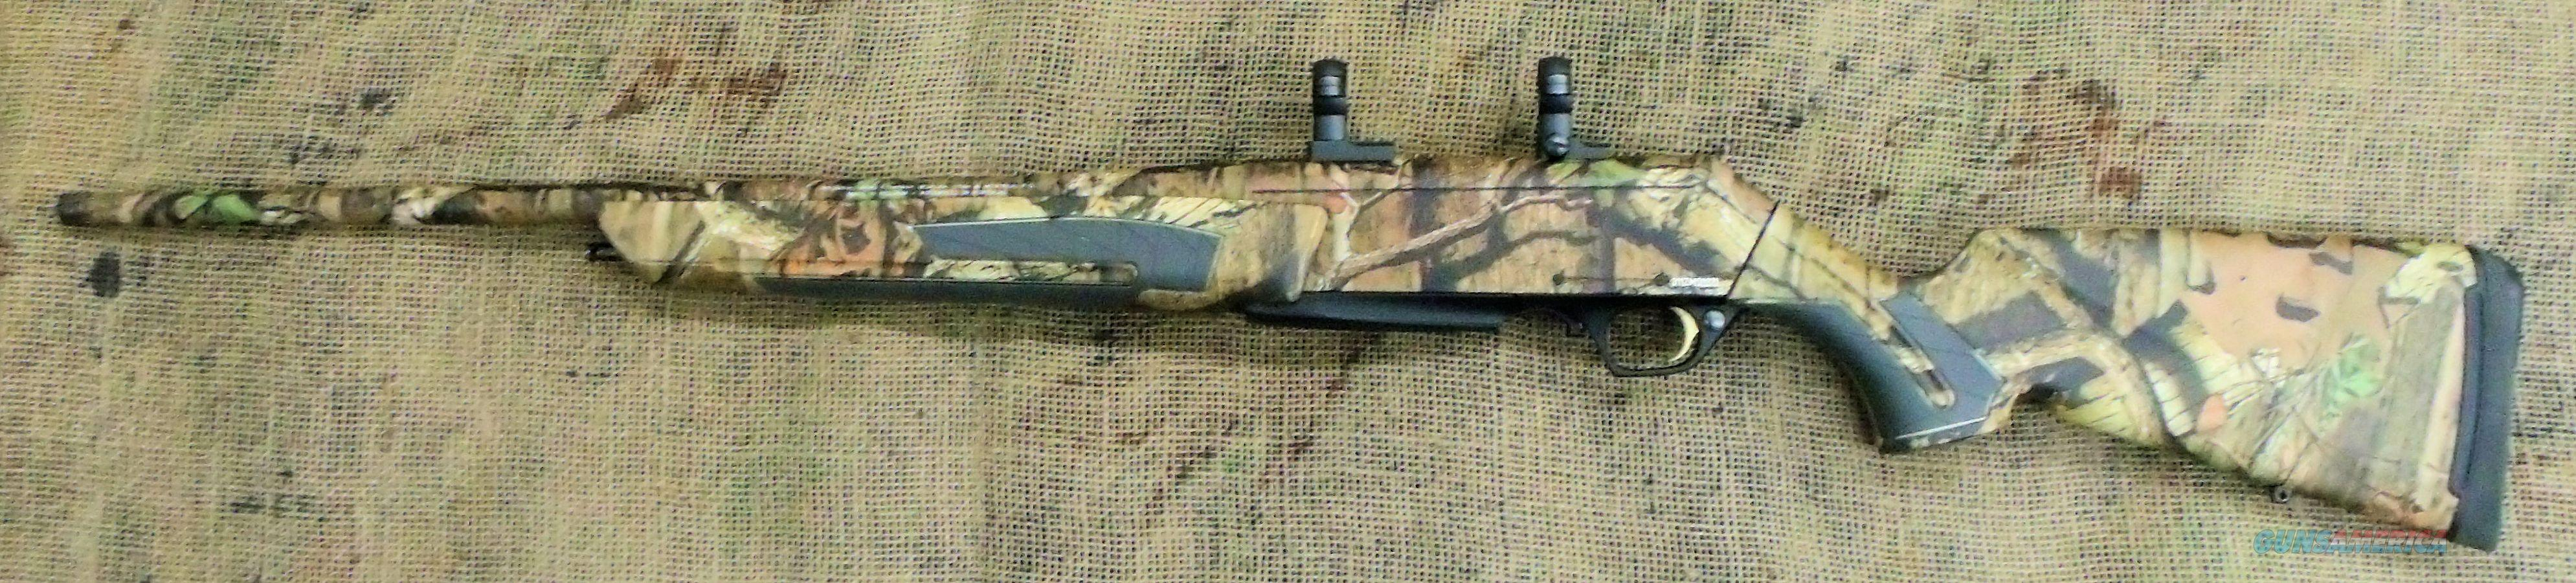 BROWNING BAR Long Trac Camo, 270 Win. Cal  Guns > Rifles > Browning Rifles > Semi Auto > Hunting